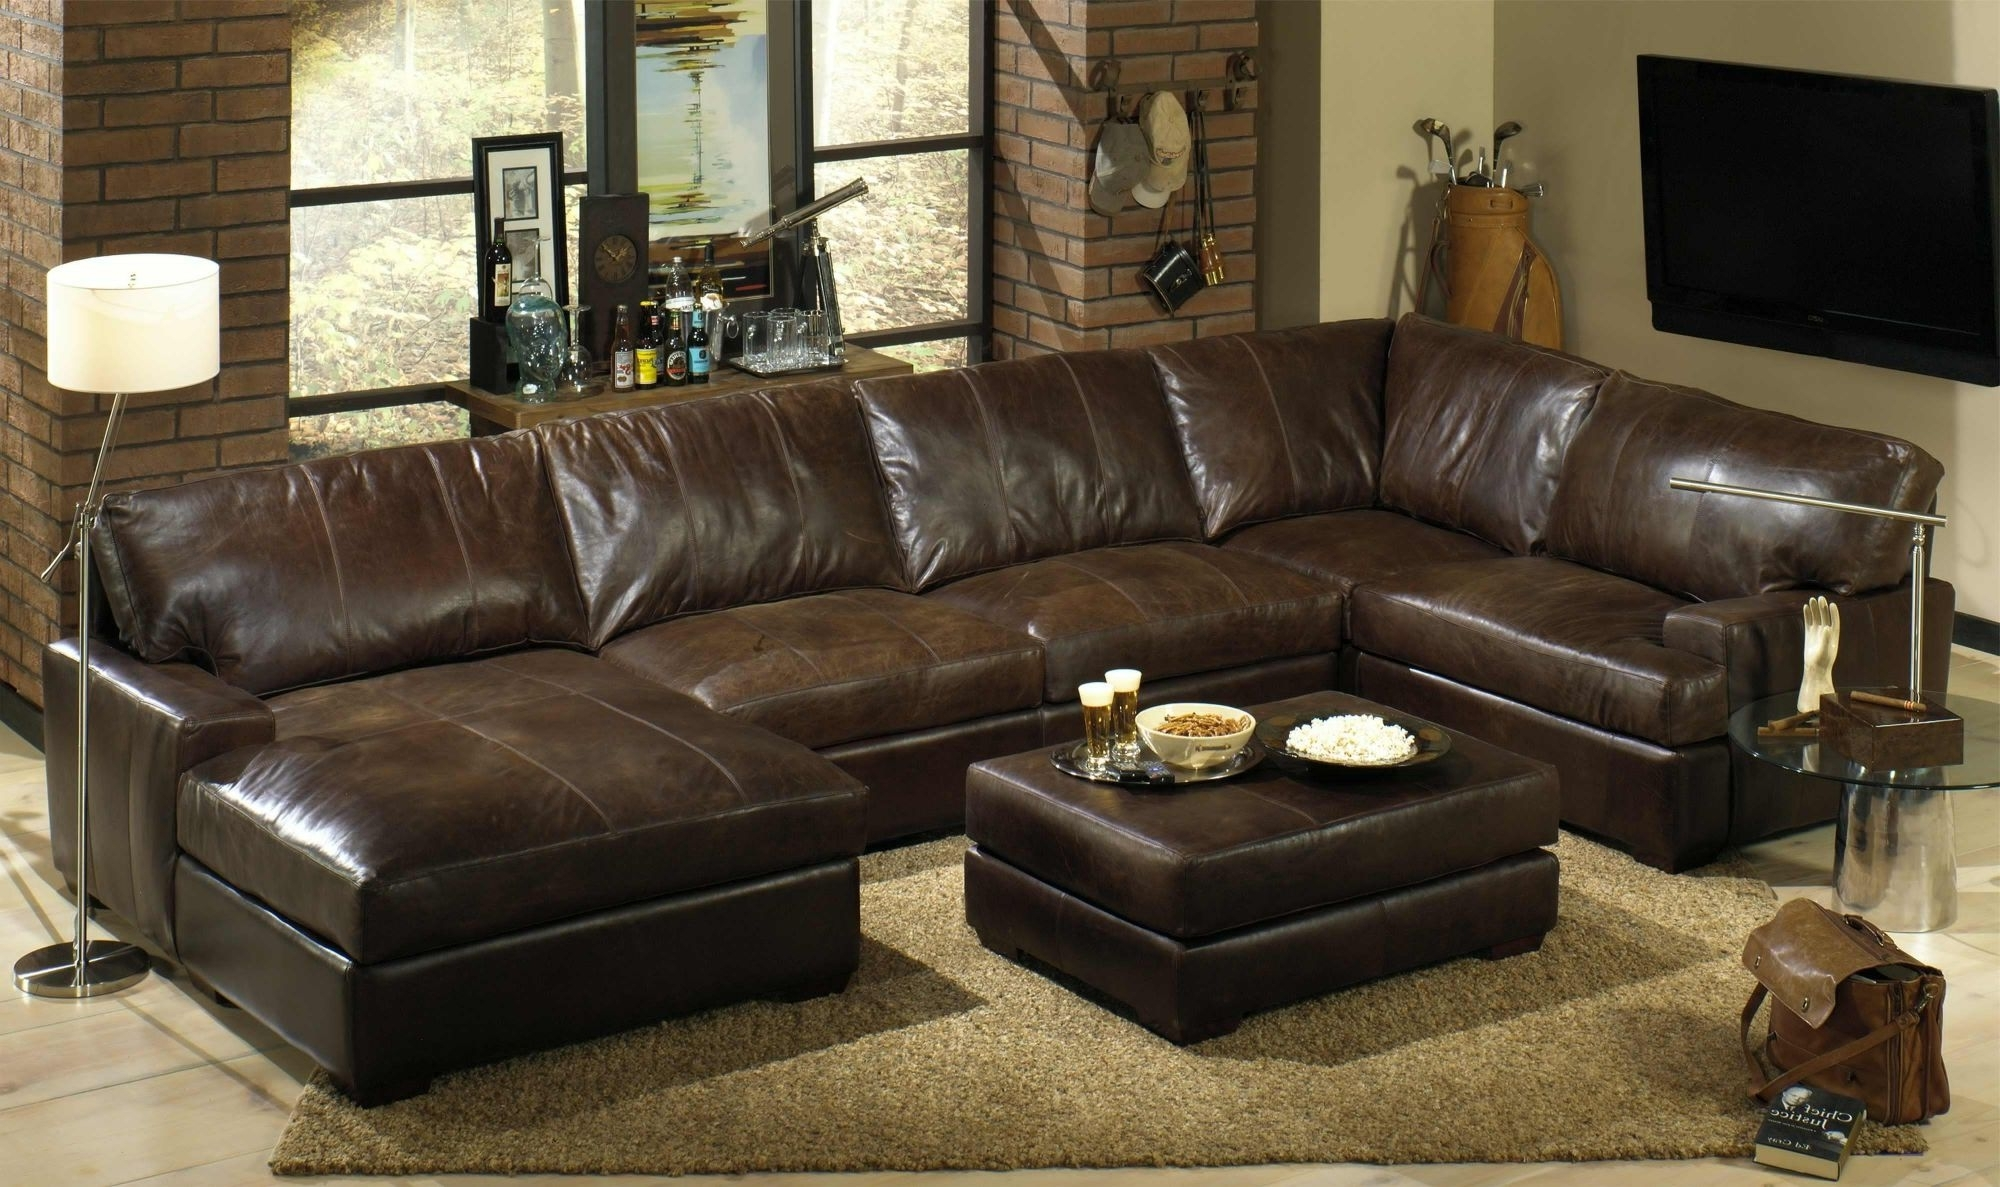 Newest Amazing Sectional Sofa Design Small Leather Chaise Pict Of With Pertaining To Sectional Sofas With Recliners For Small Spaces (View 11 of 20)